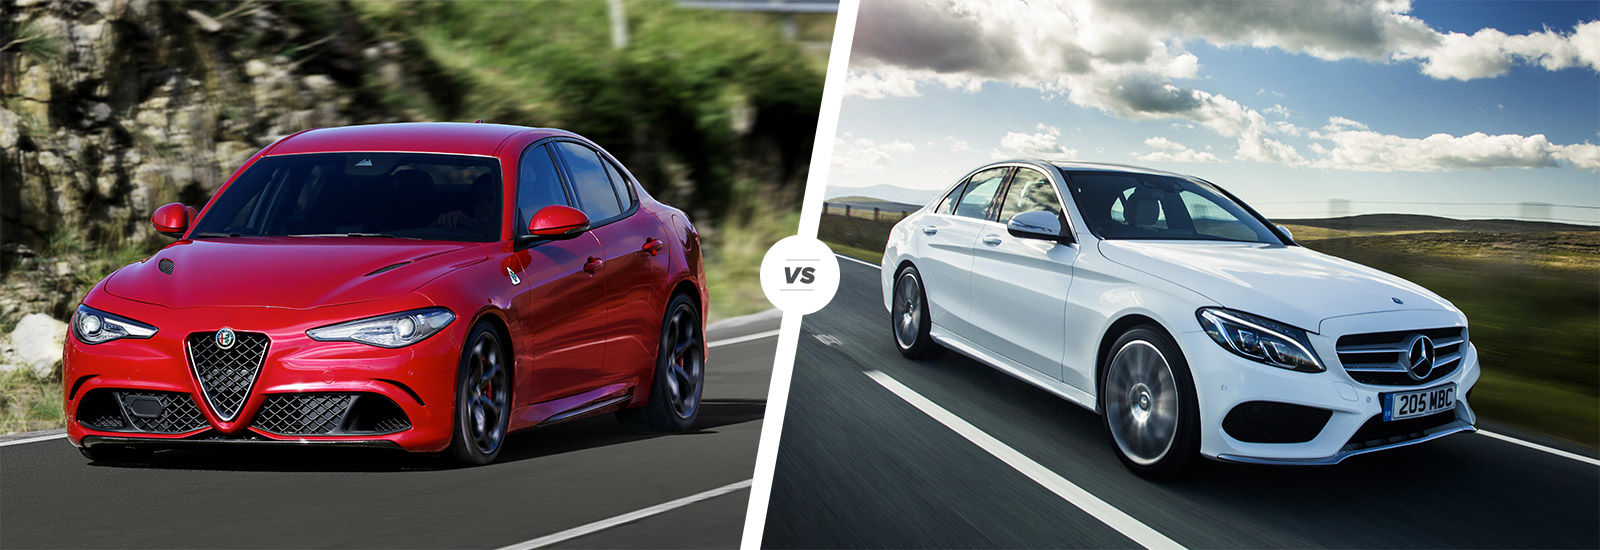 Alfa romeo giulia vs mercedes c class carwow for Alfa romeo vs mercedes benz